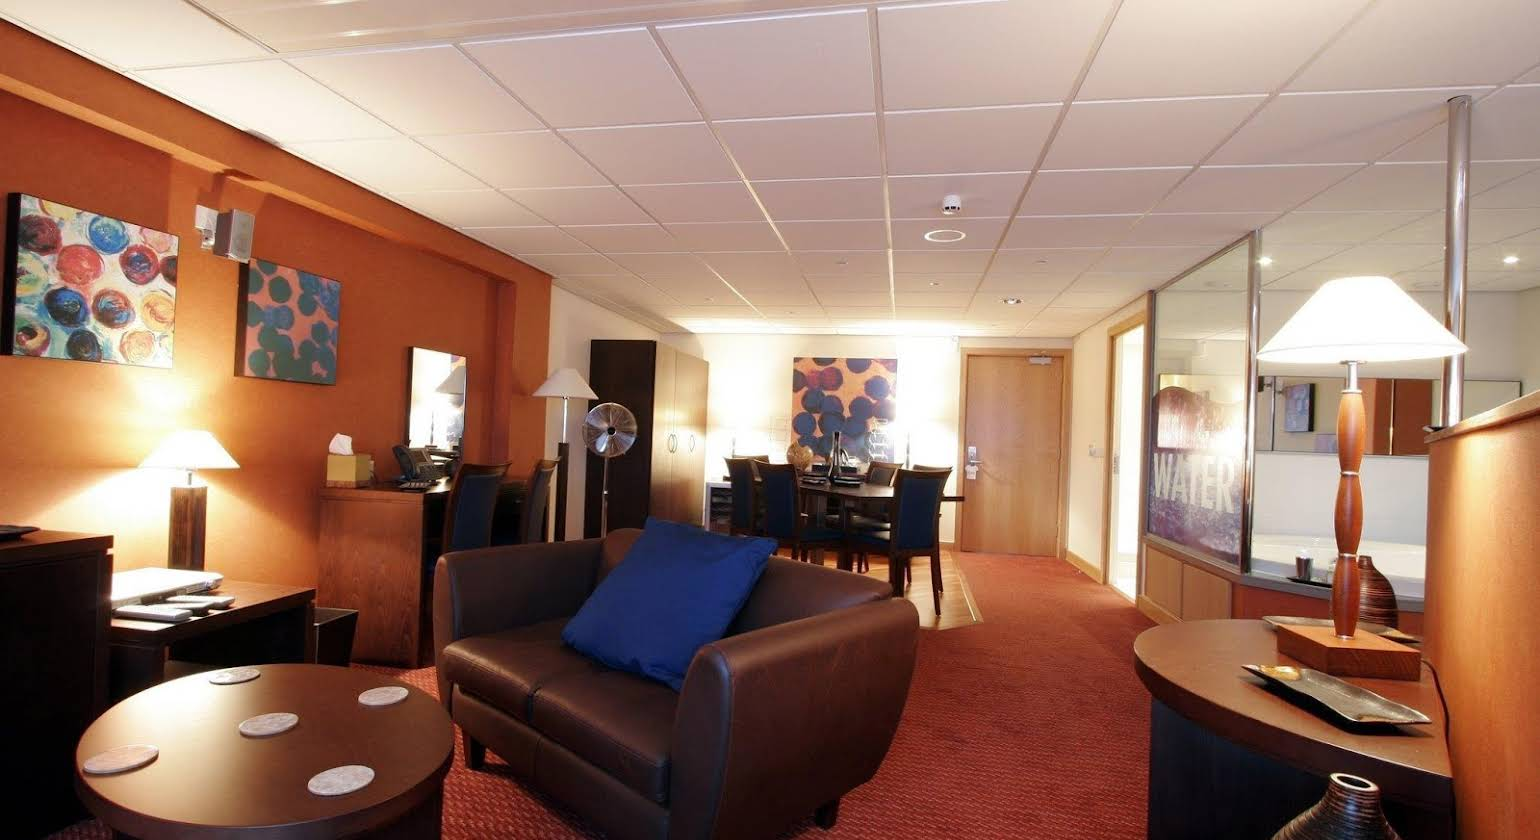 DoubleTree by Hilton Hotel at the Ricoh Arena - Coventry